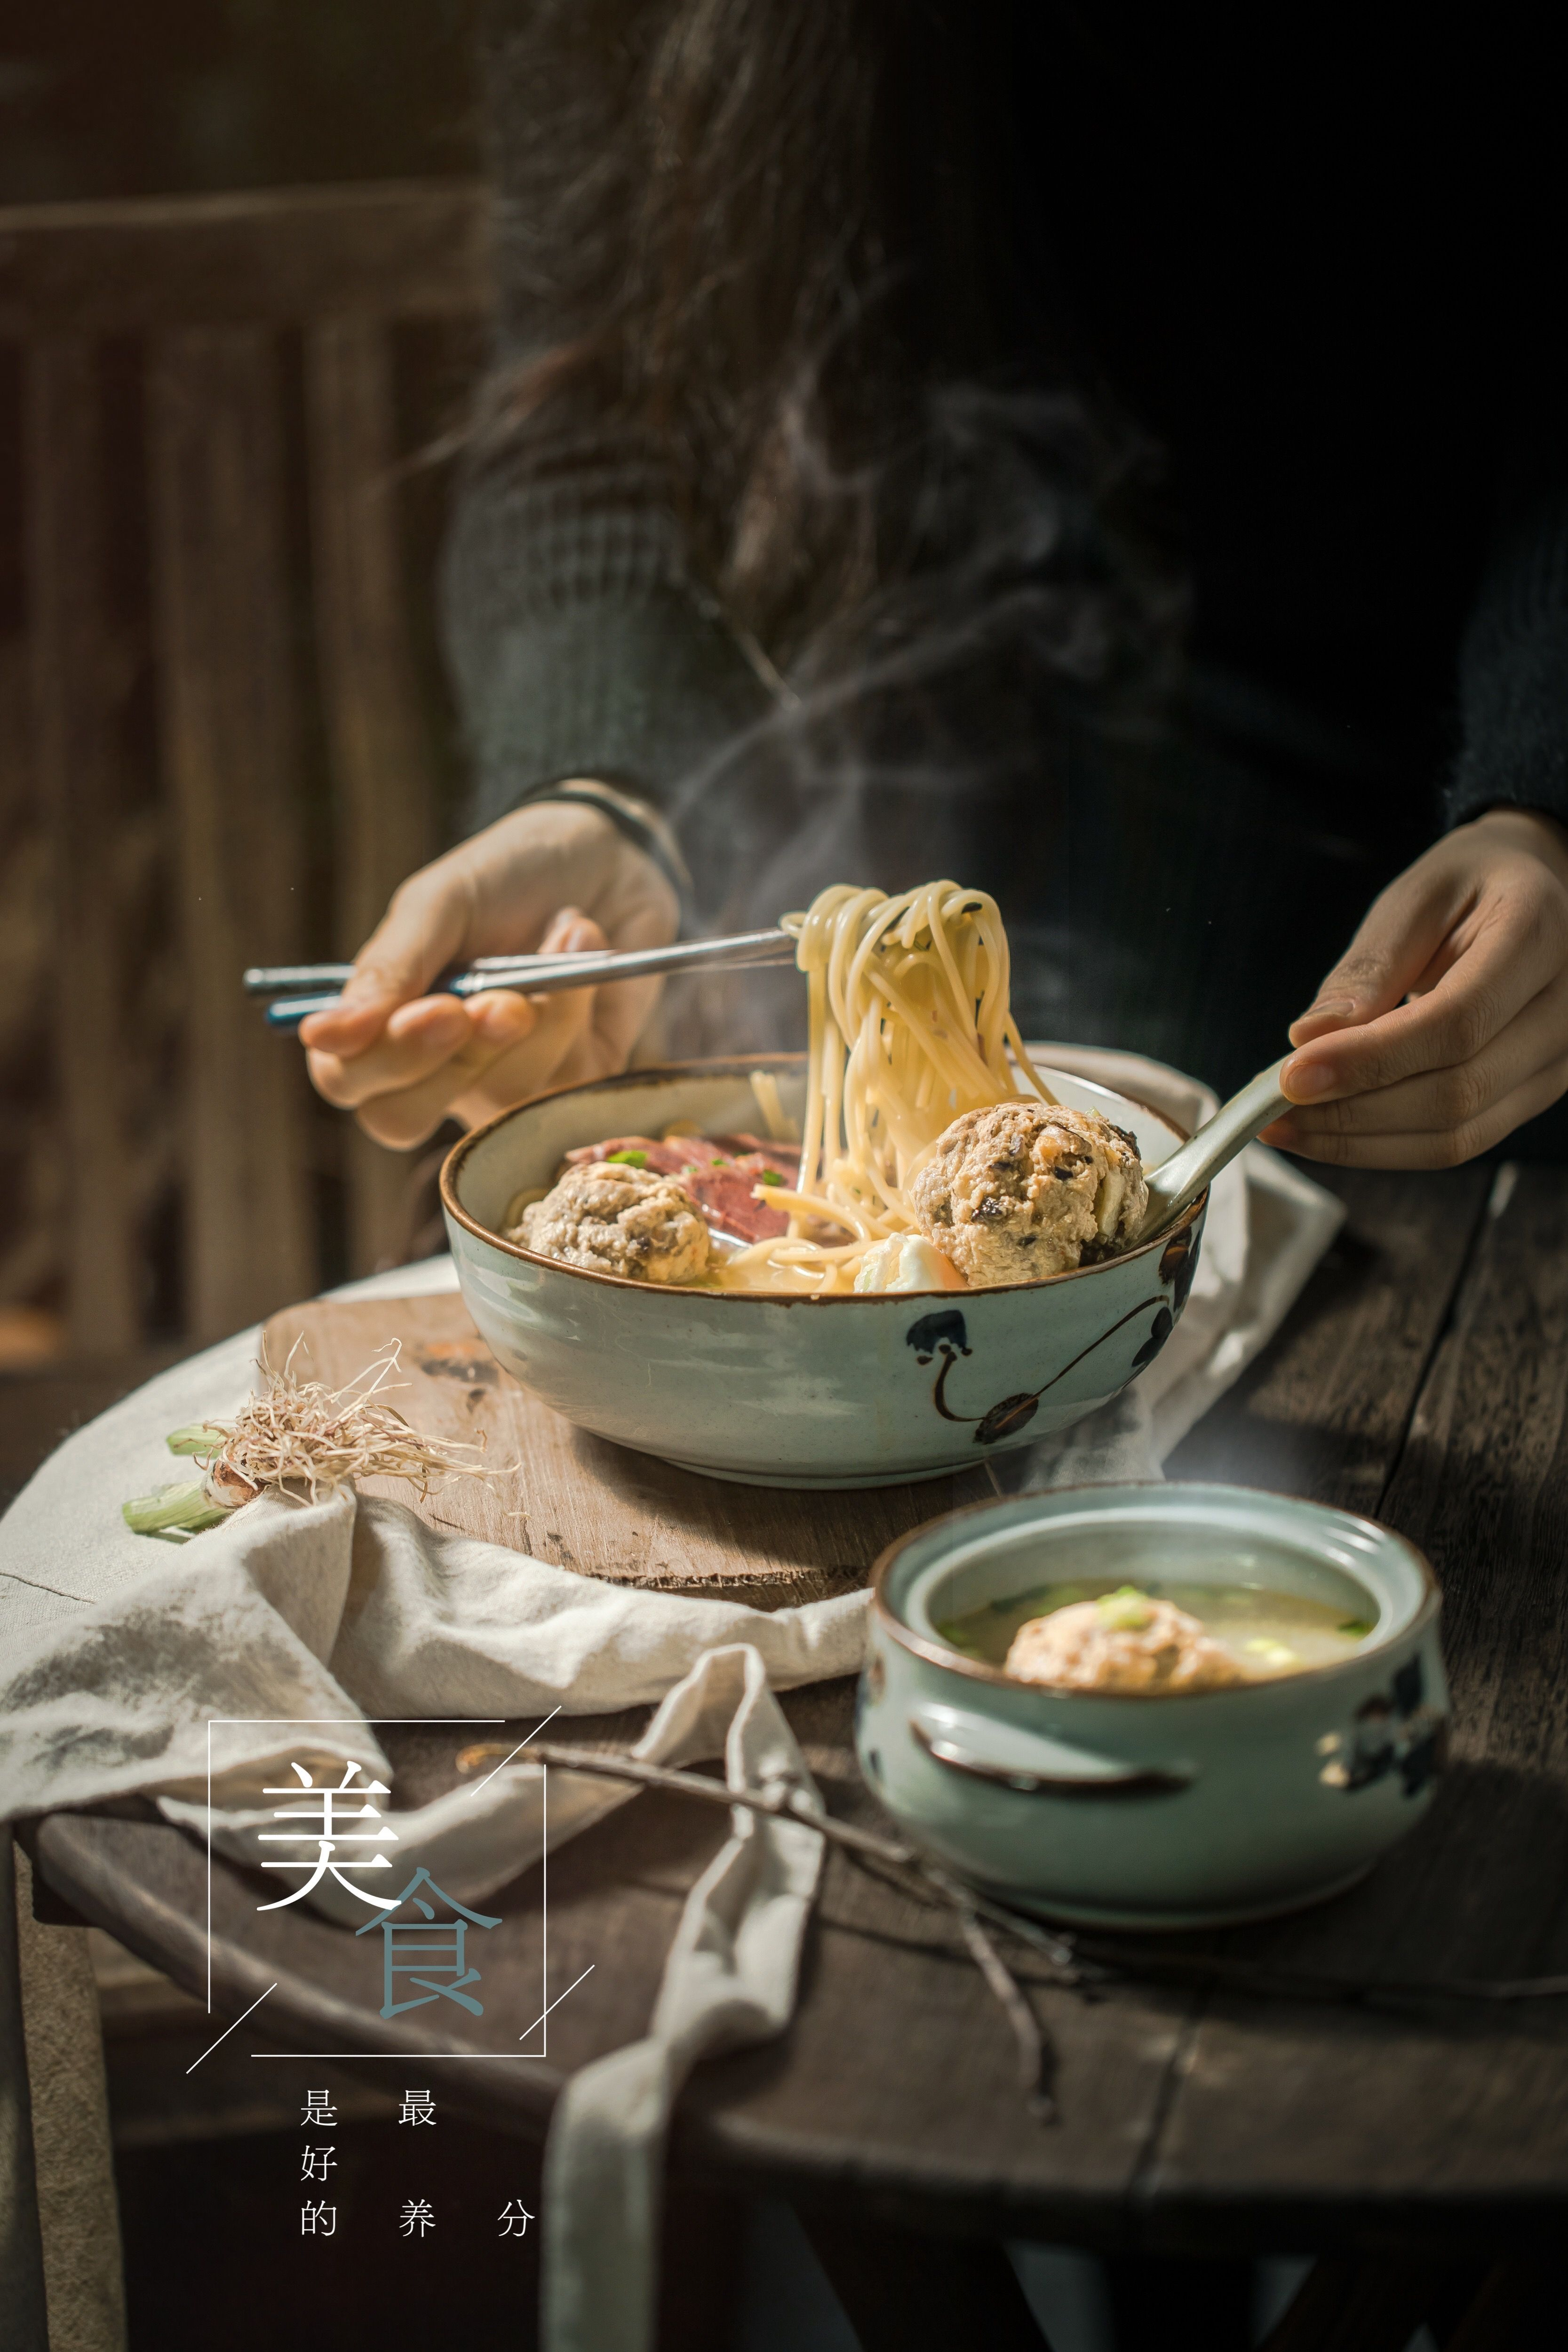 Chinese Soup Noodles Photography 蟹粉狮子头鸡汤面 Di 2020 Mie Ayam